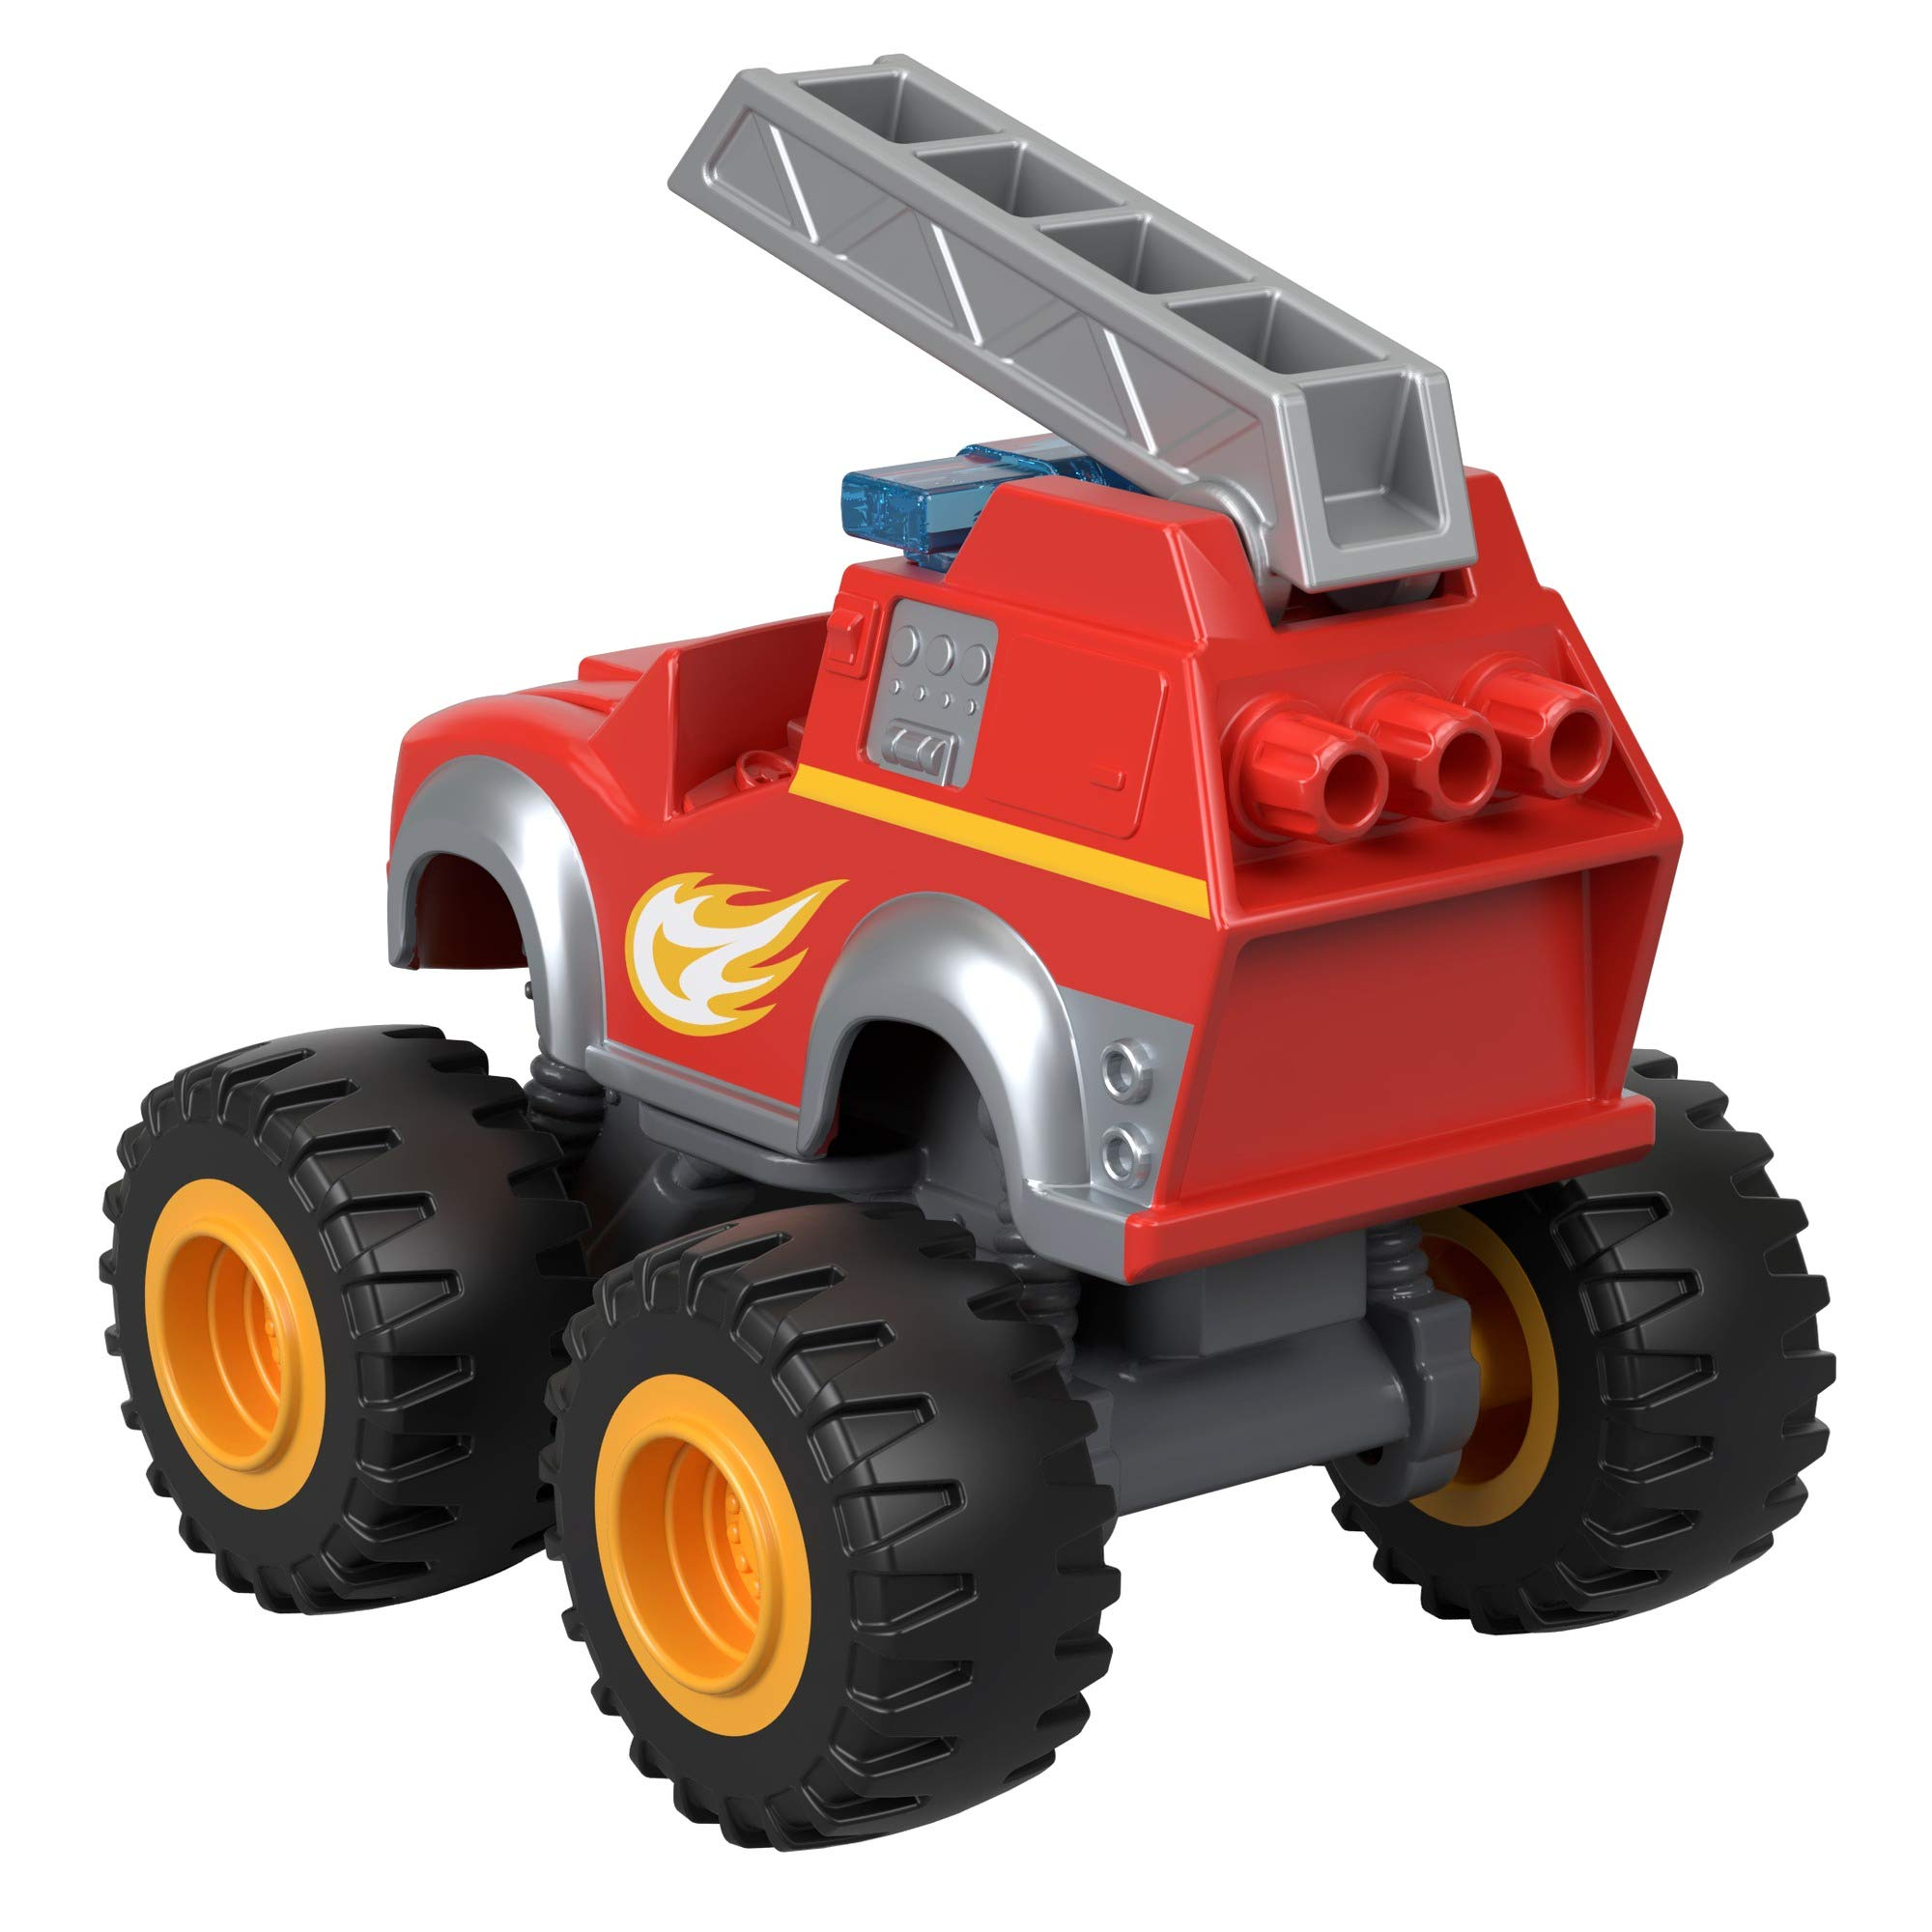 Fisher-Price Nickelodeon Blaze & The Monster Machines, Fire Rescue Blaze Toy, Red